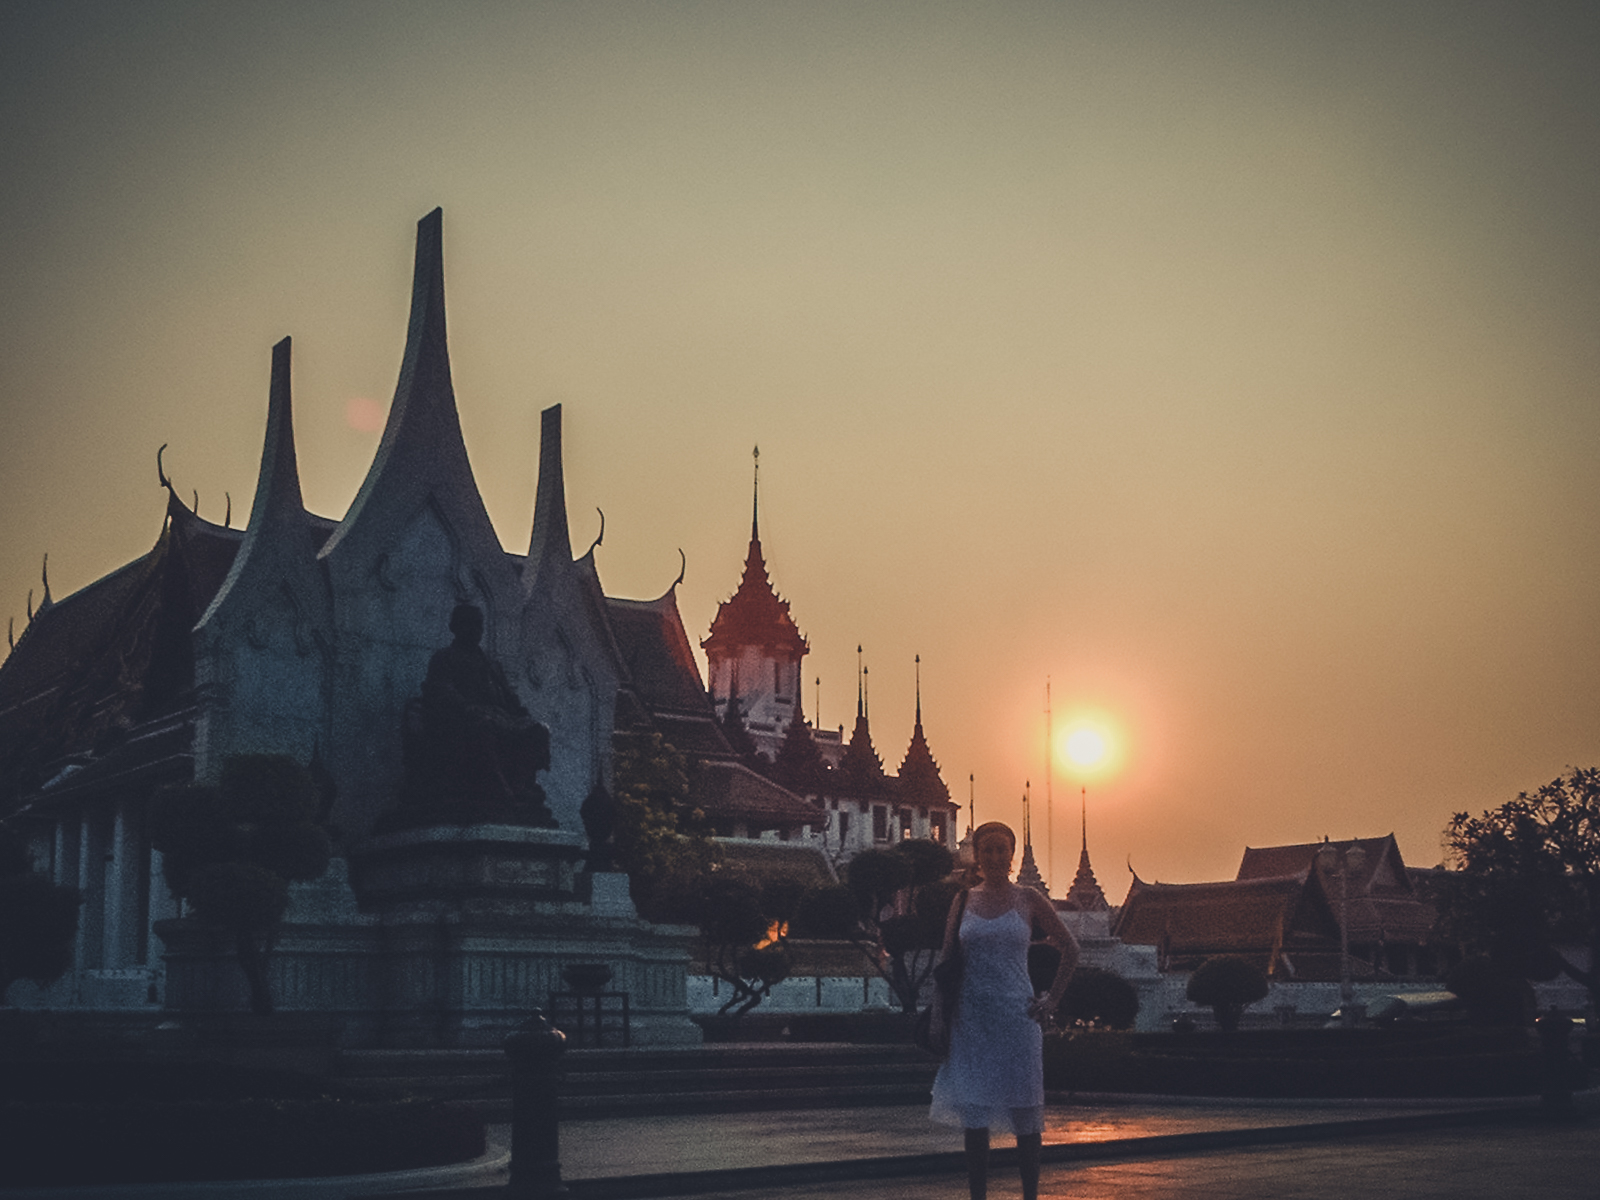 ruins_backpacking. south east asia. travel. young. thailand. cambodia. malaysia. couple. trip. sunset over the palace.jpg